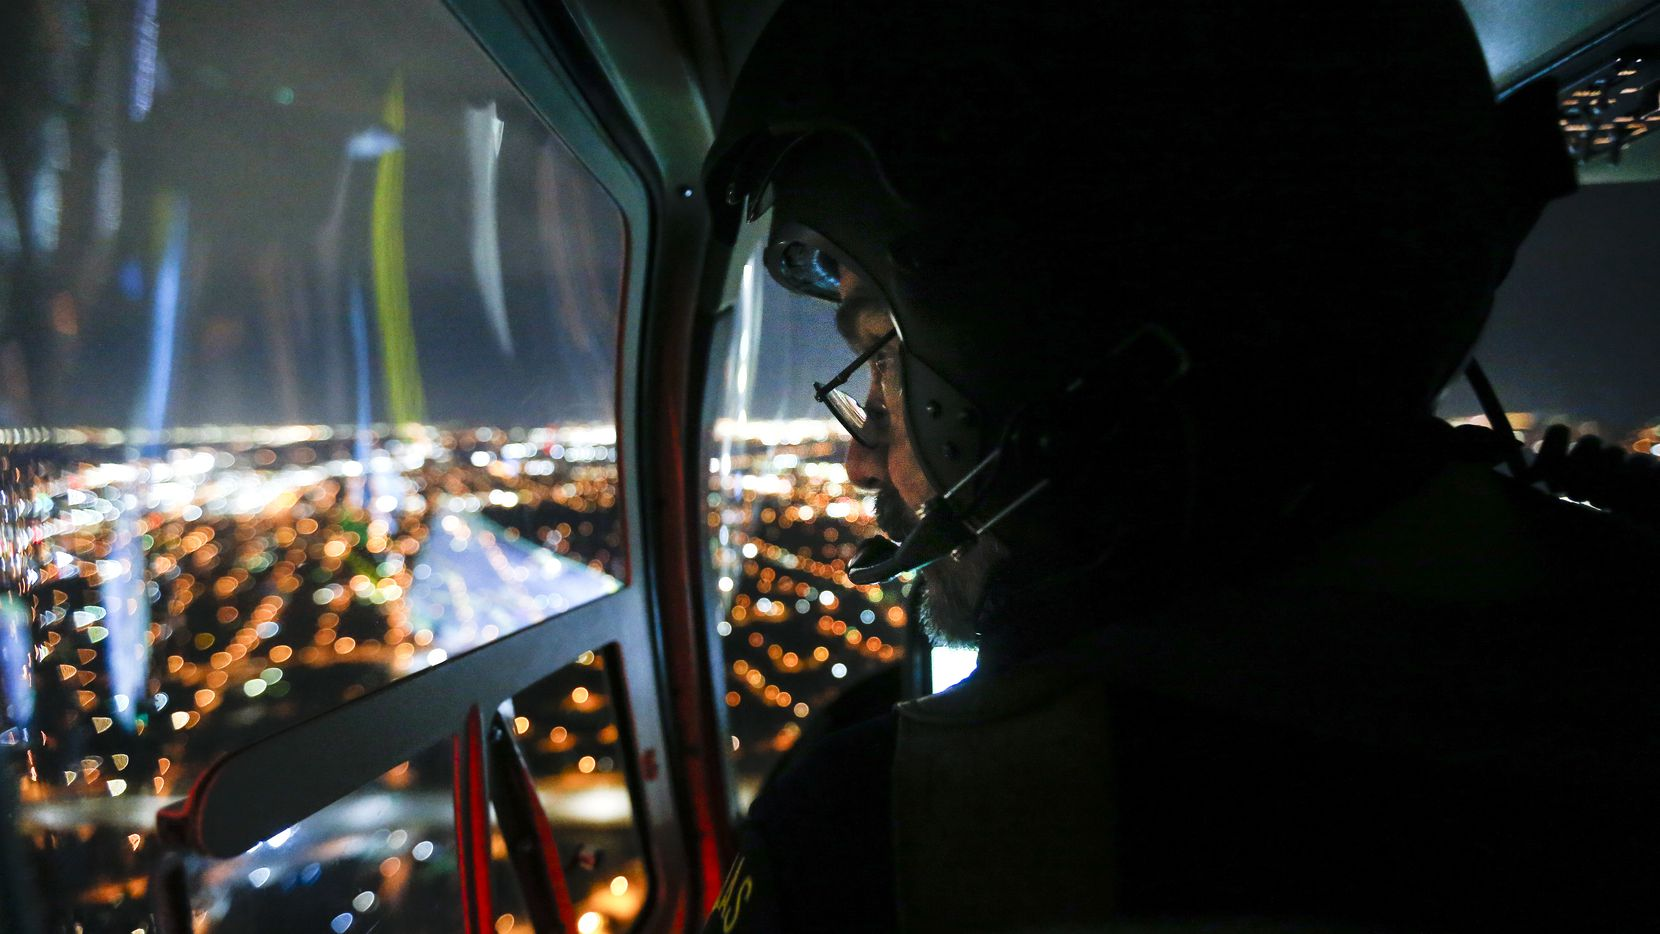 Assisting ground units in hunting a stolen vehicle, Dallas police Senior Cpl. Mark Colborn looks out the window or Air One.